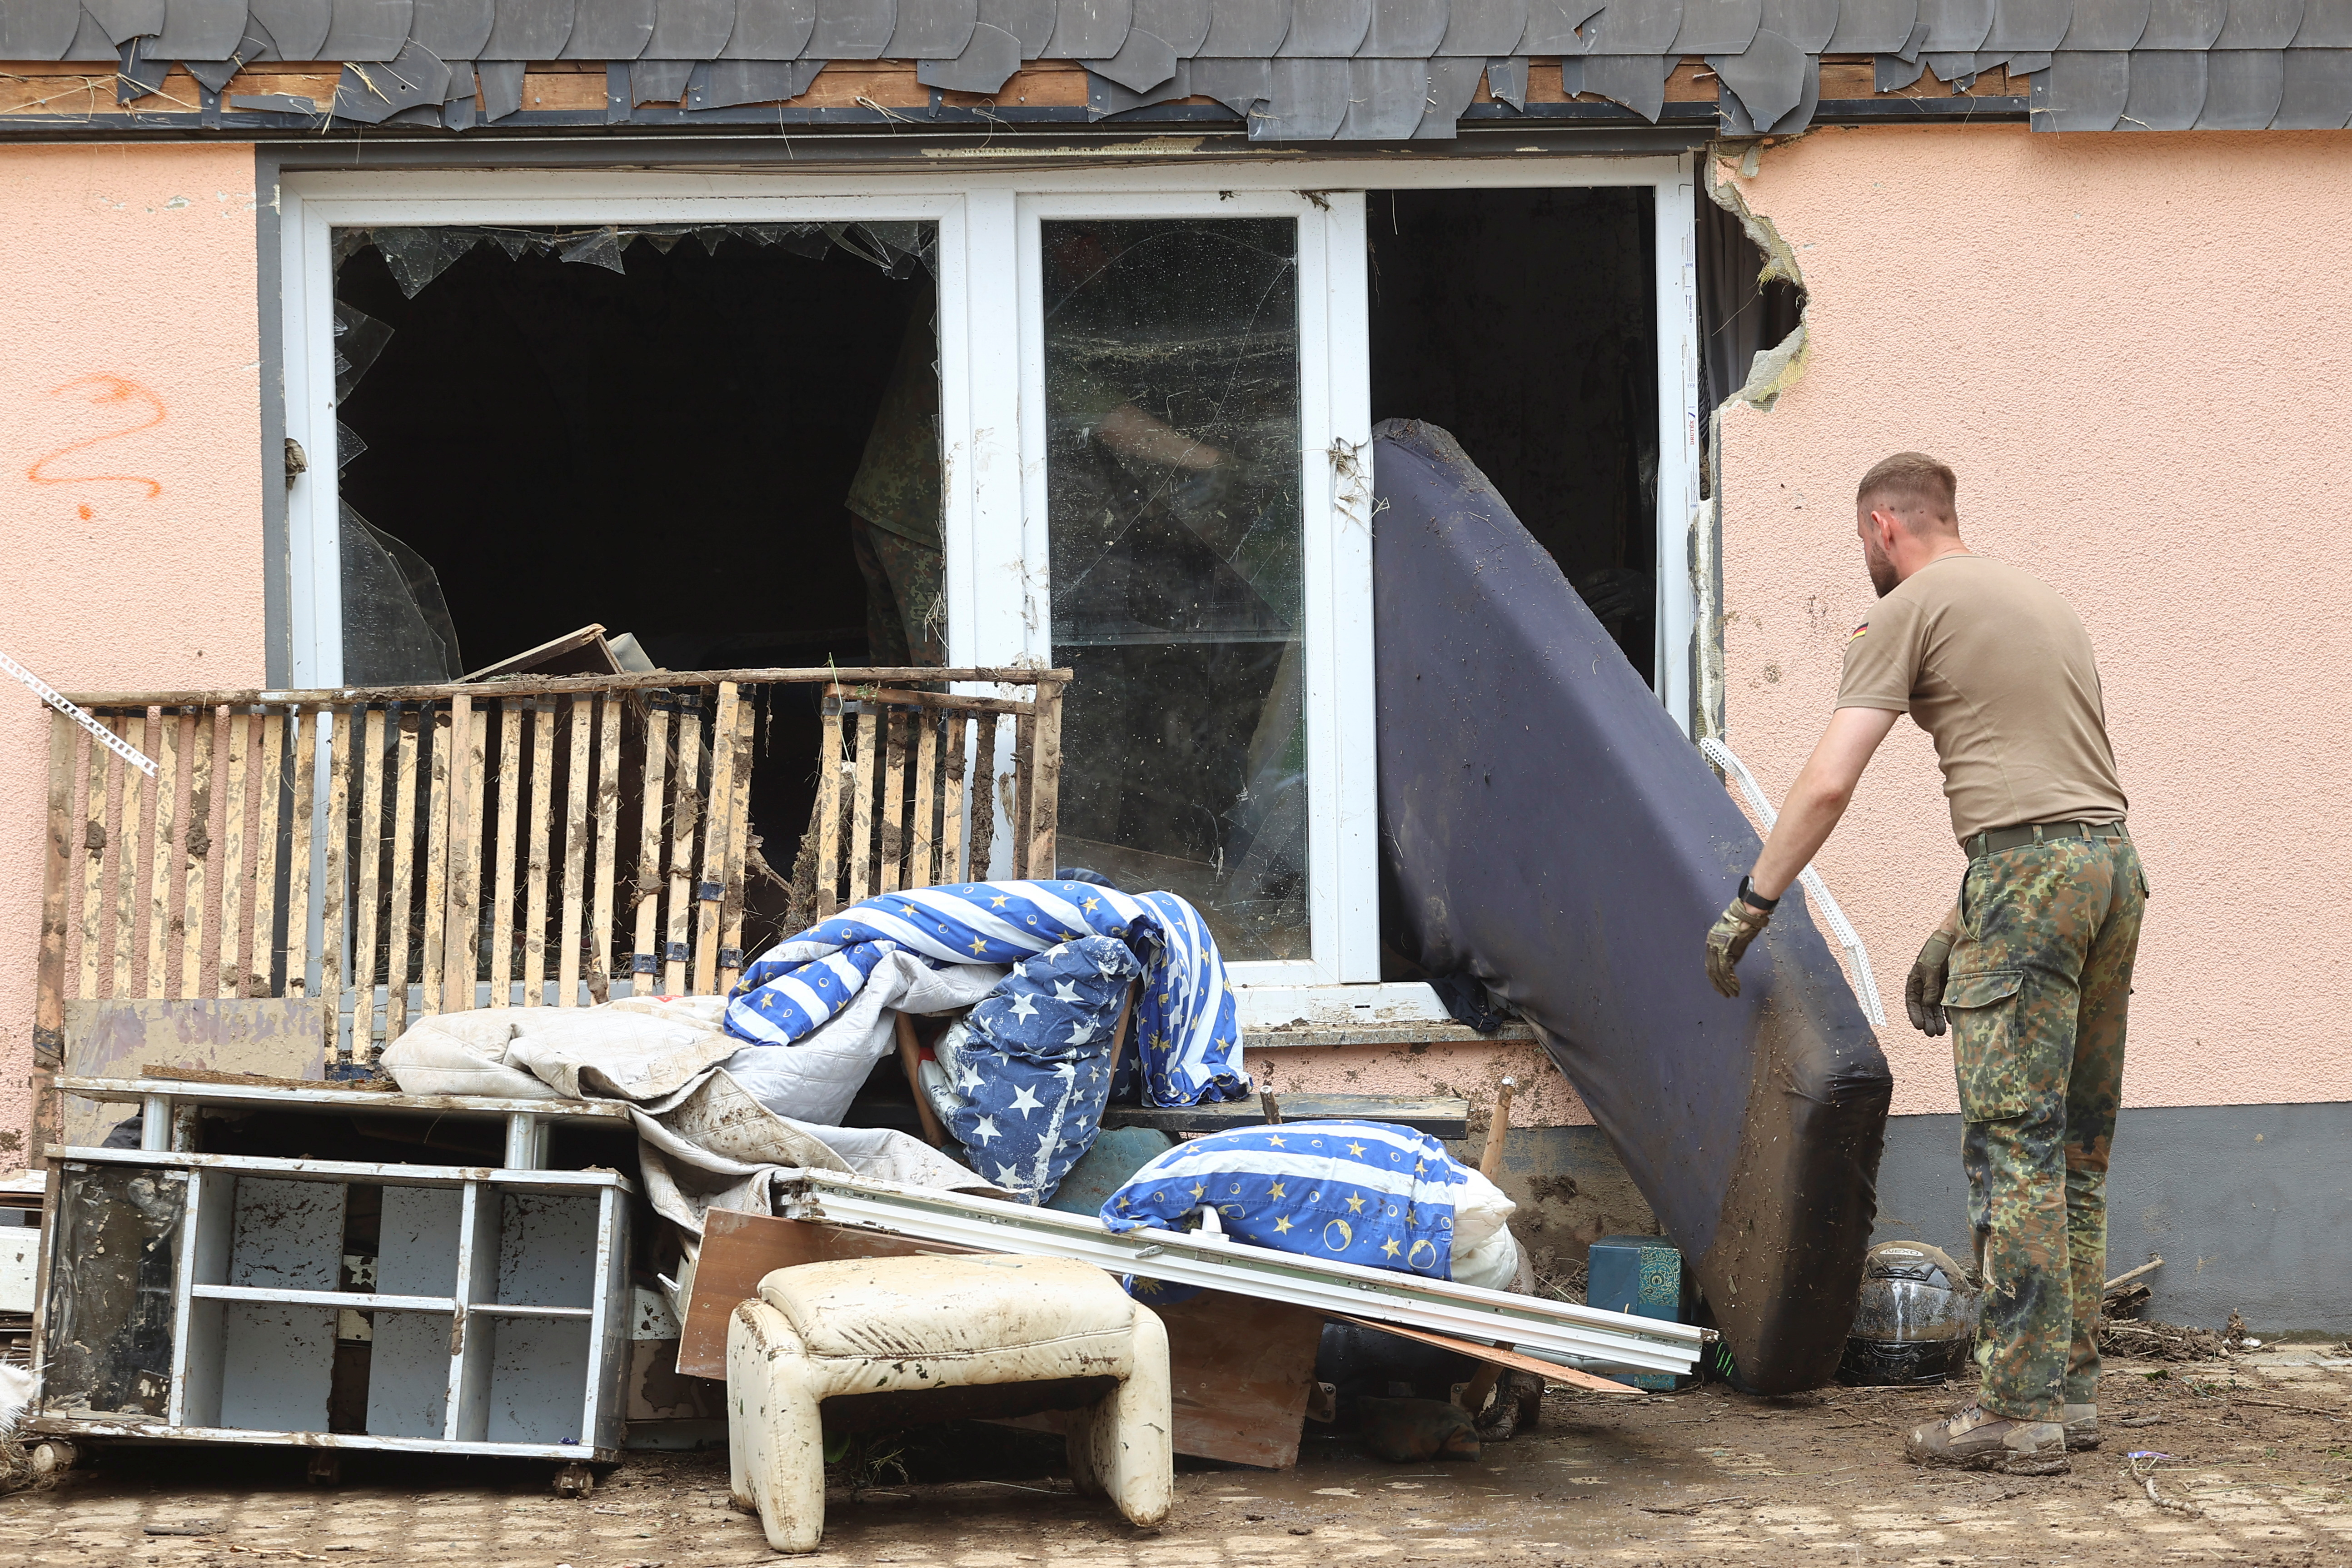 Members of the Bundeswehr forces work in an area affected by floods caused by heavy rainfalls in Schuld, Germany, July 19, 2021. REUTERS/Wolfgang Rattay